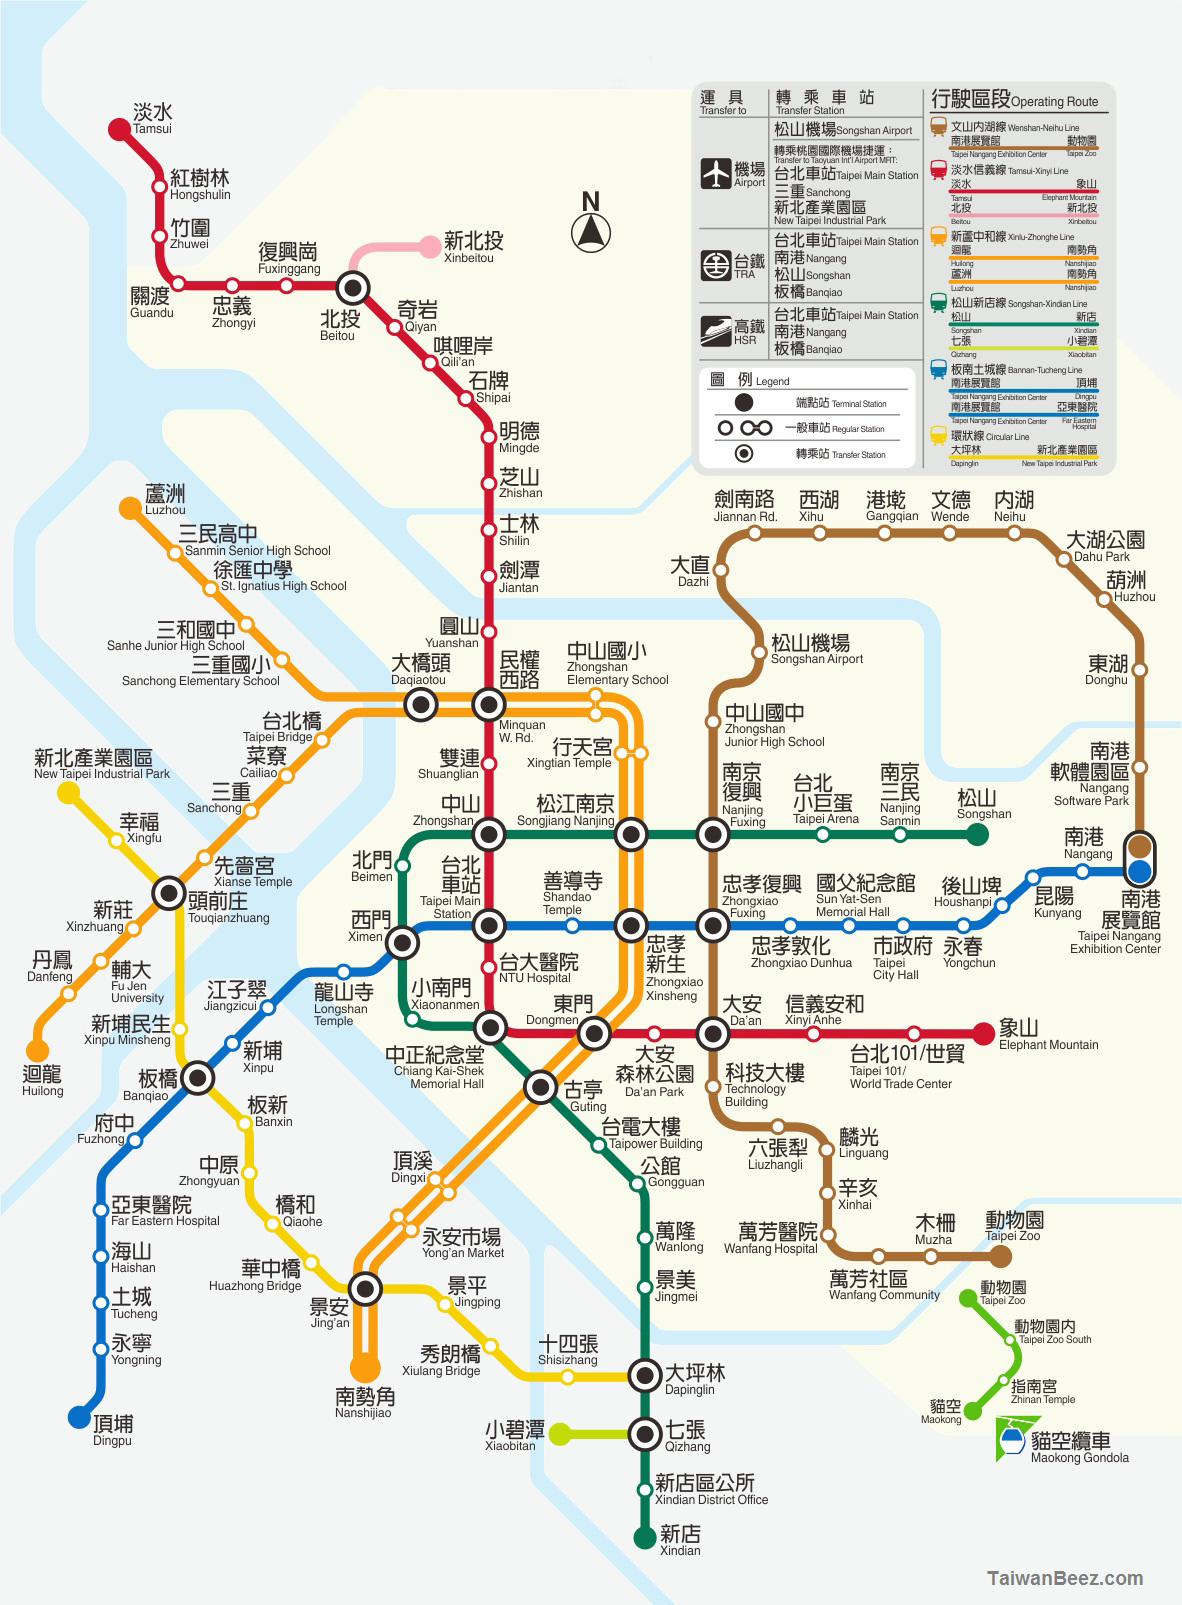 M 1484394145 A 79F likewise Taiwan Railway Station Map together with Taipei Walkabout 2010 as well Article further 16. on taiwan taipei mrt map